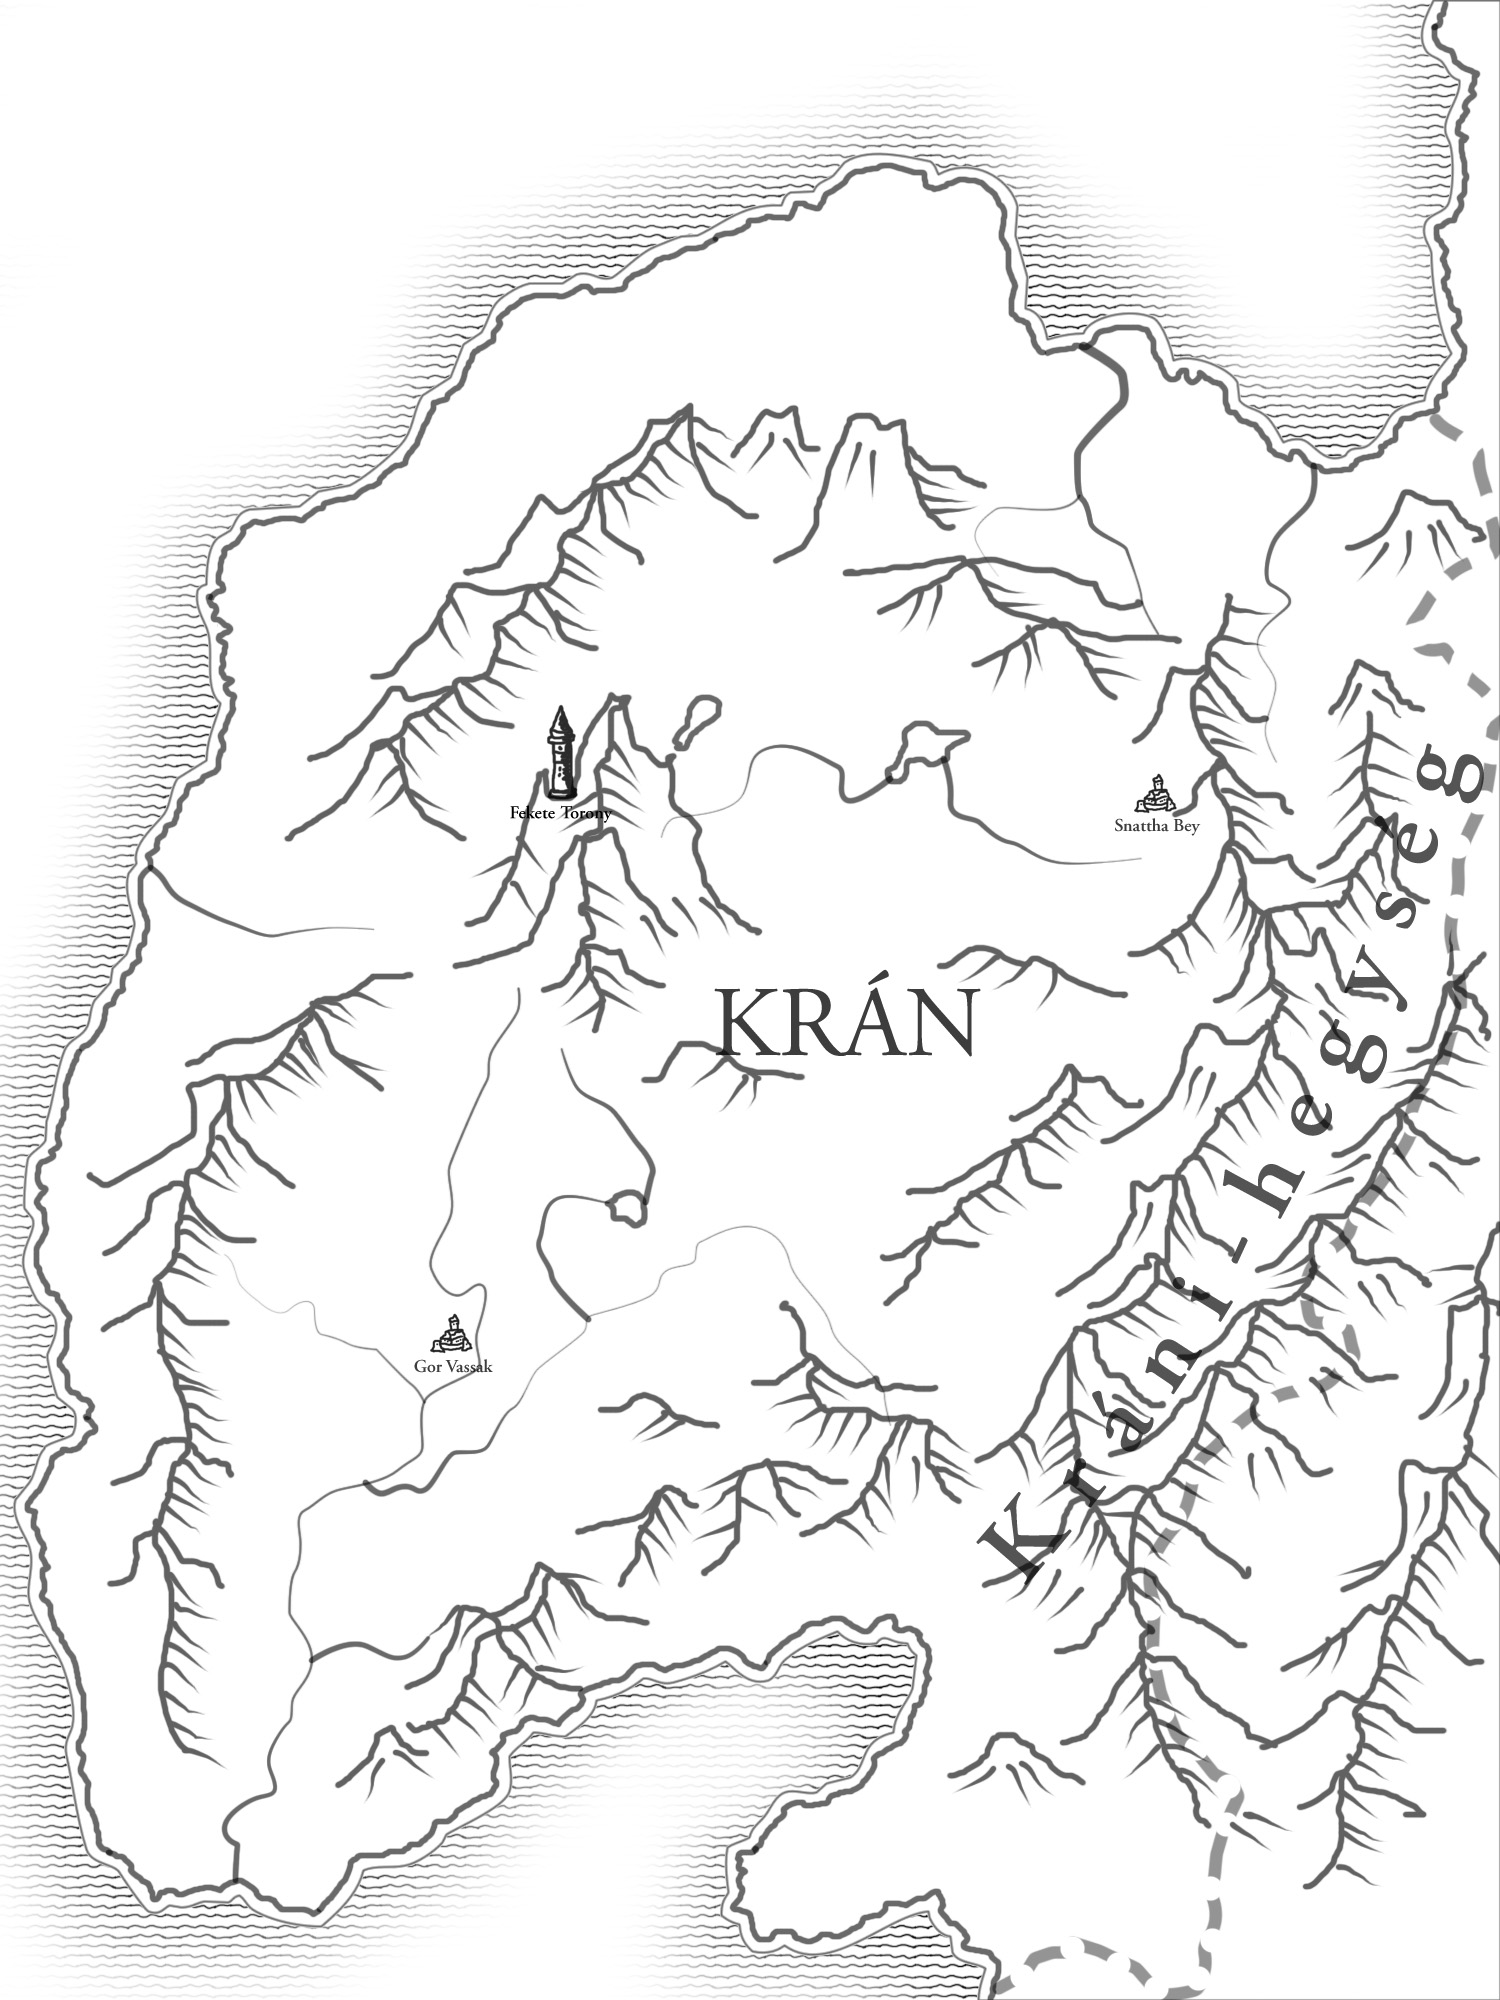 Ynev - Kran (Country Map)